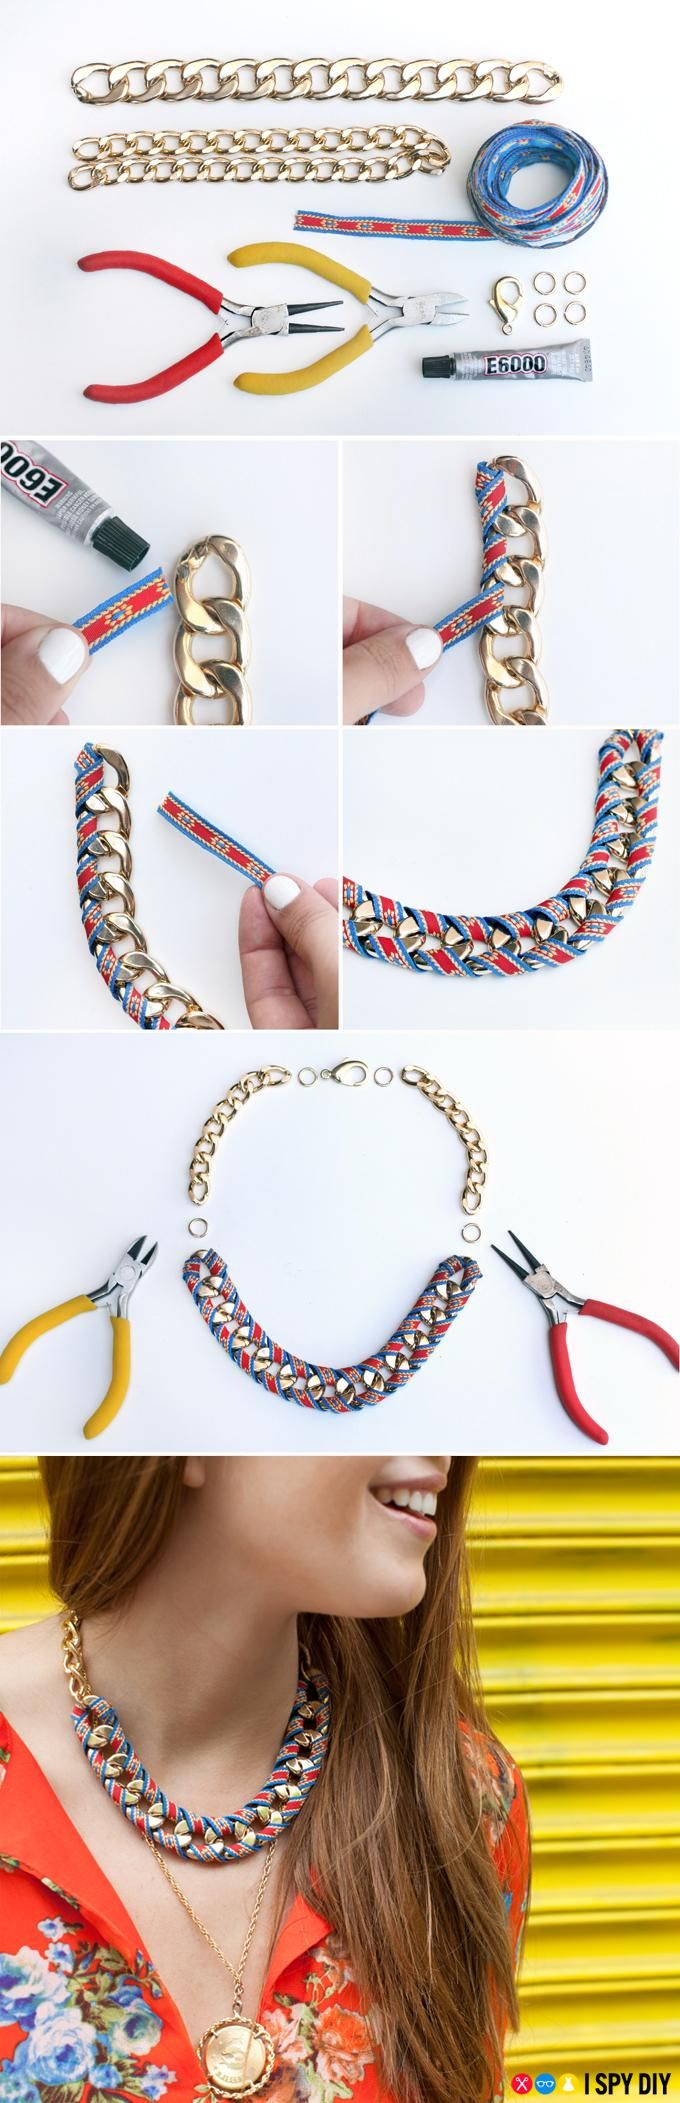 DIY ribbon wrapped chain necklace. Craft ideas from LC.Pandahall.com   #pandahall